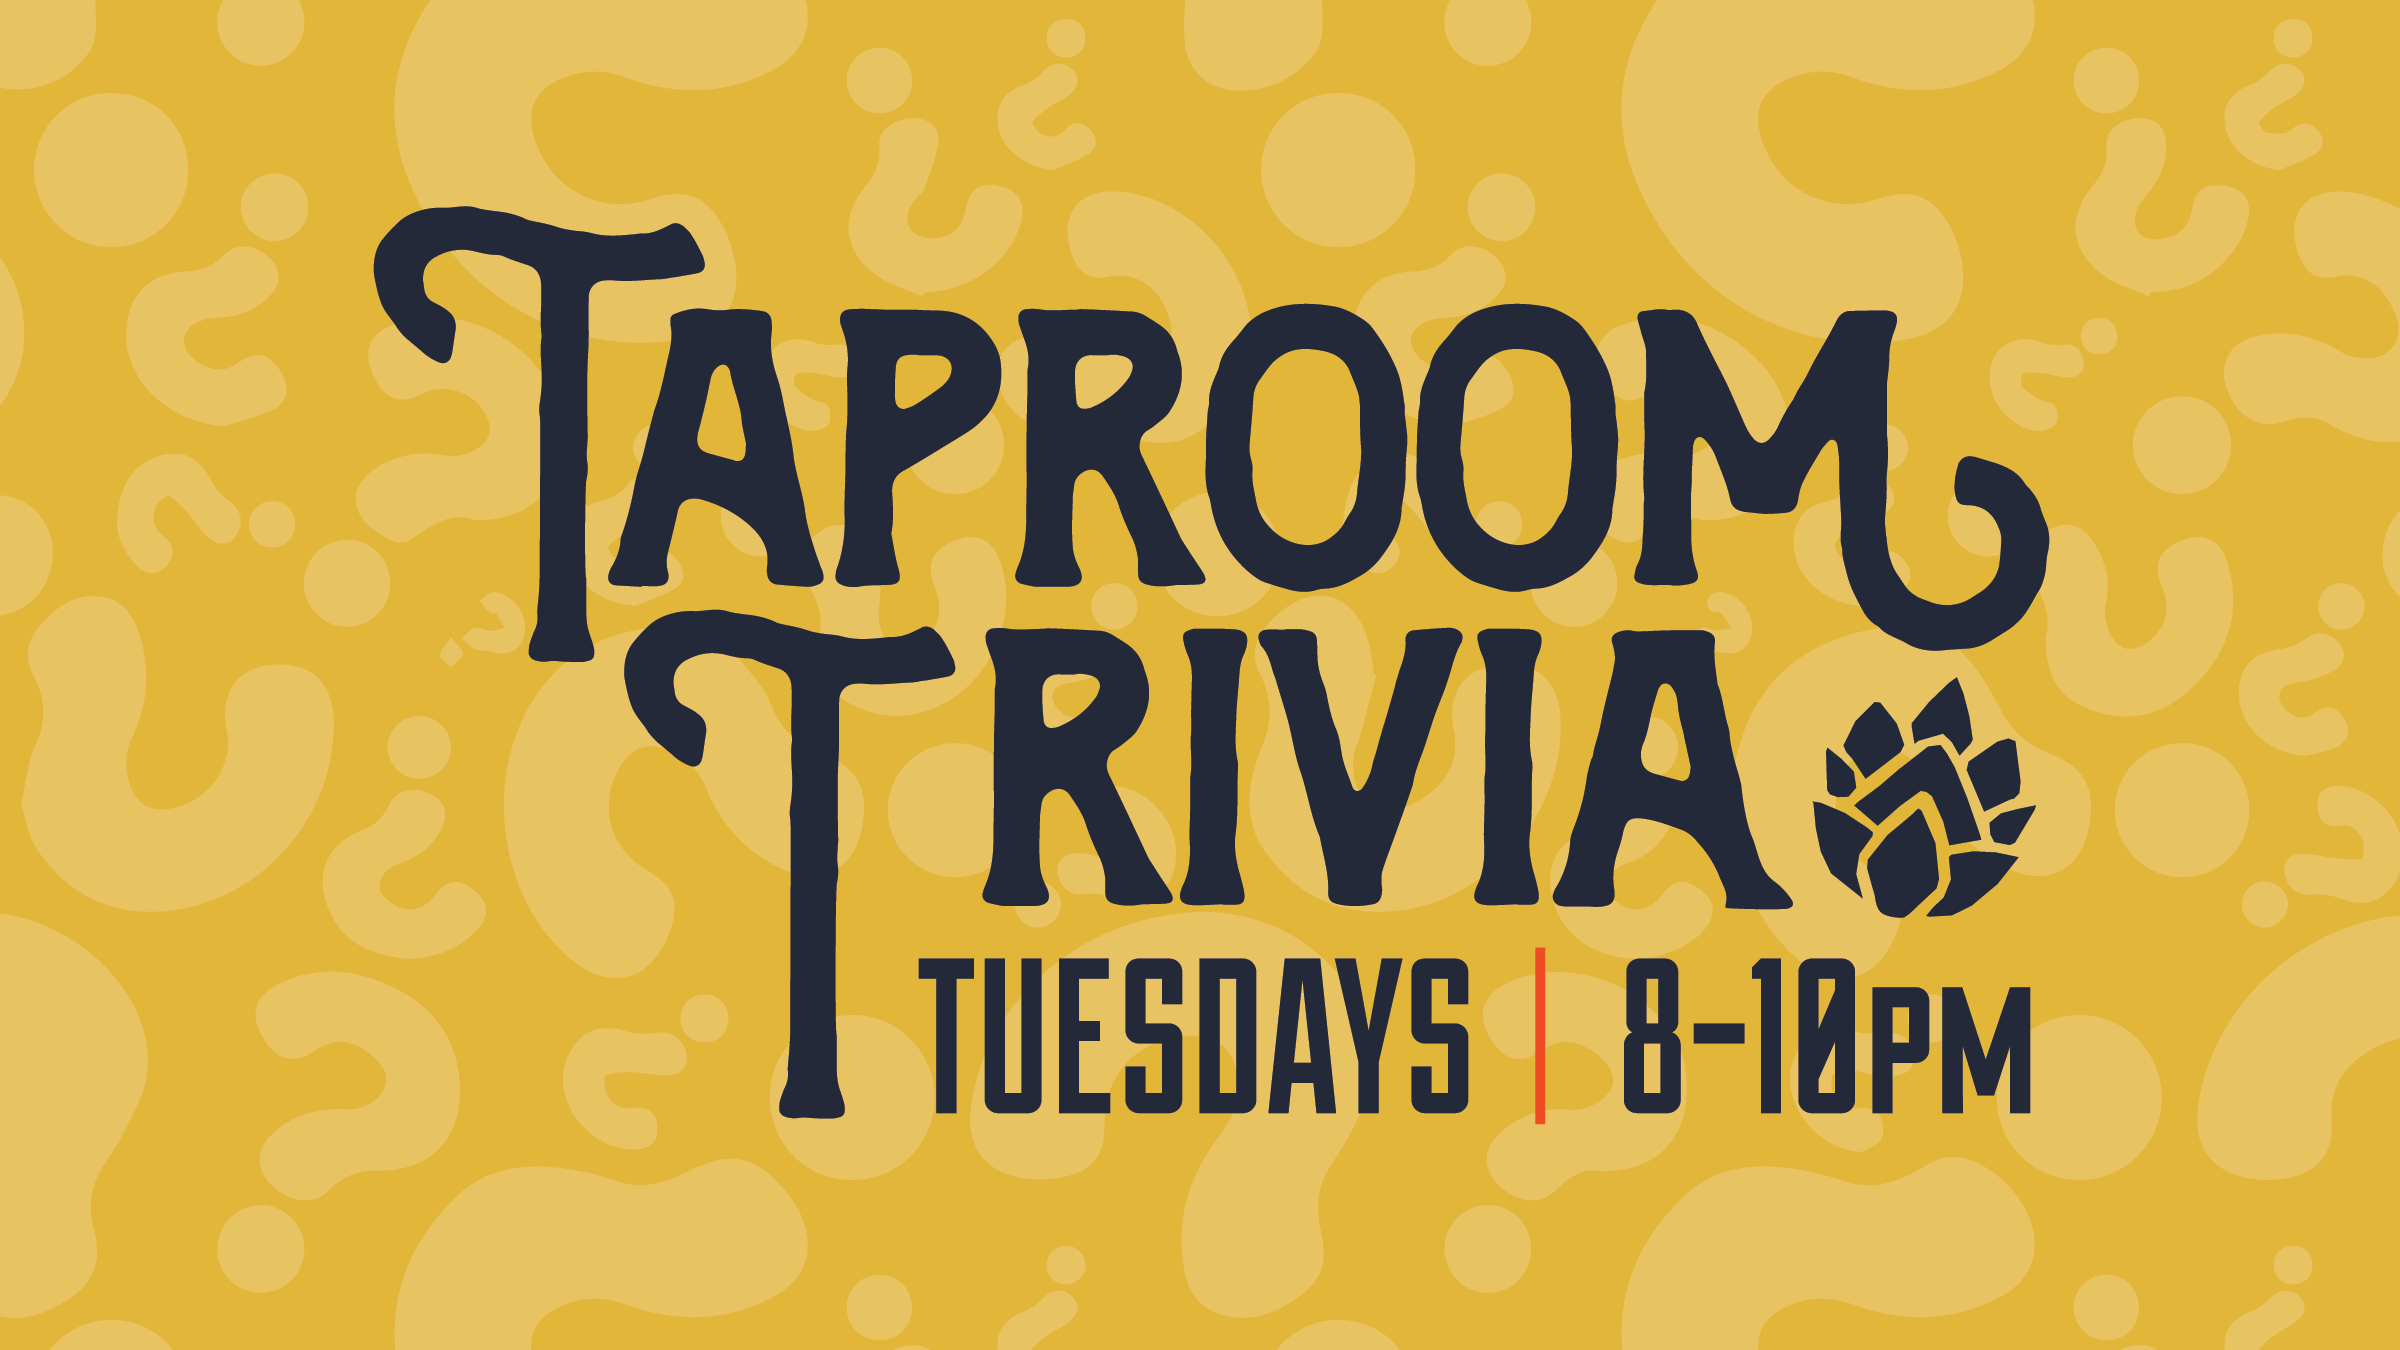 Our all ages, interactive and fun live trivia starts at 8:15 PM every Tuesday! Sign ups start at 7:30, questions drop at 8:00 PM! Prizes for the top three teams! No limit to team size.